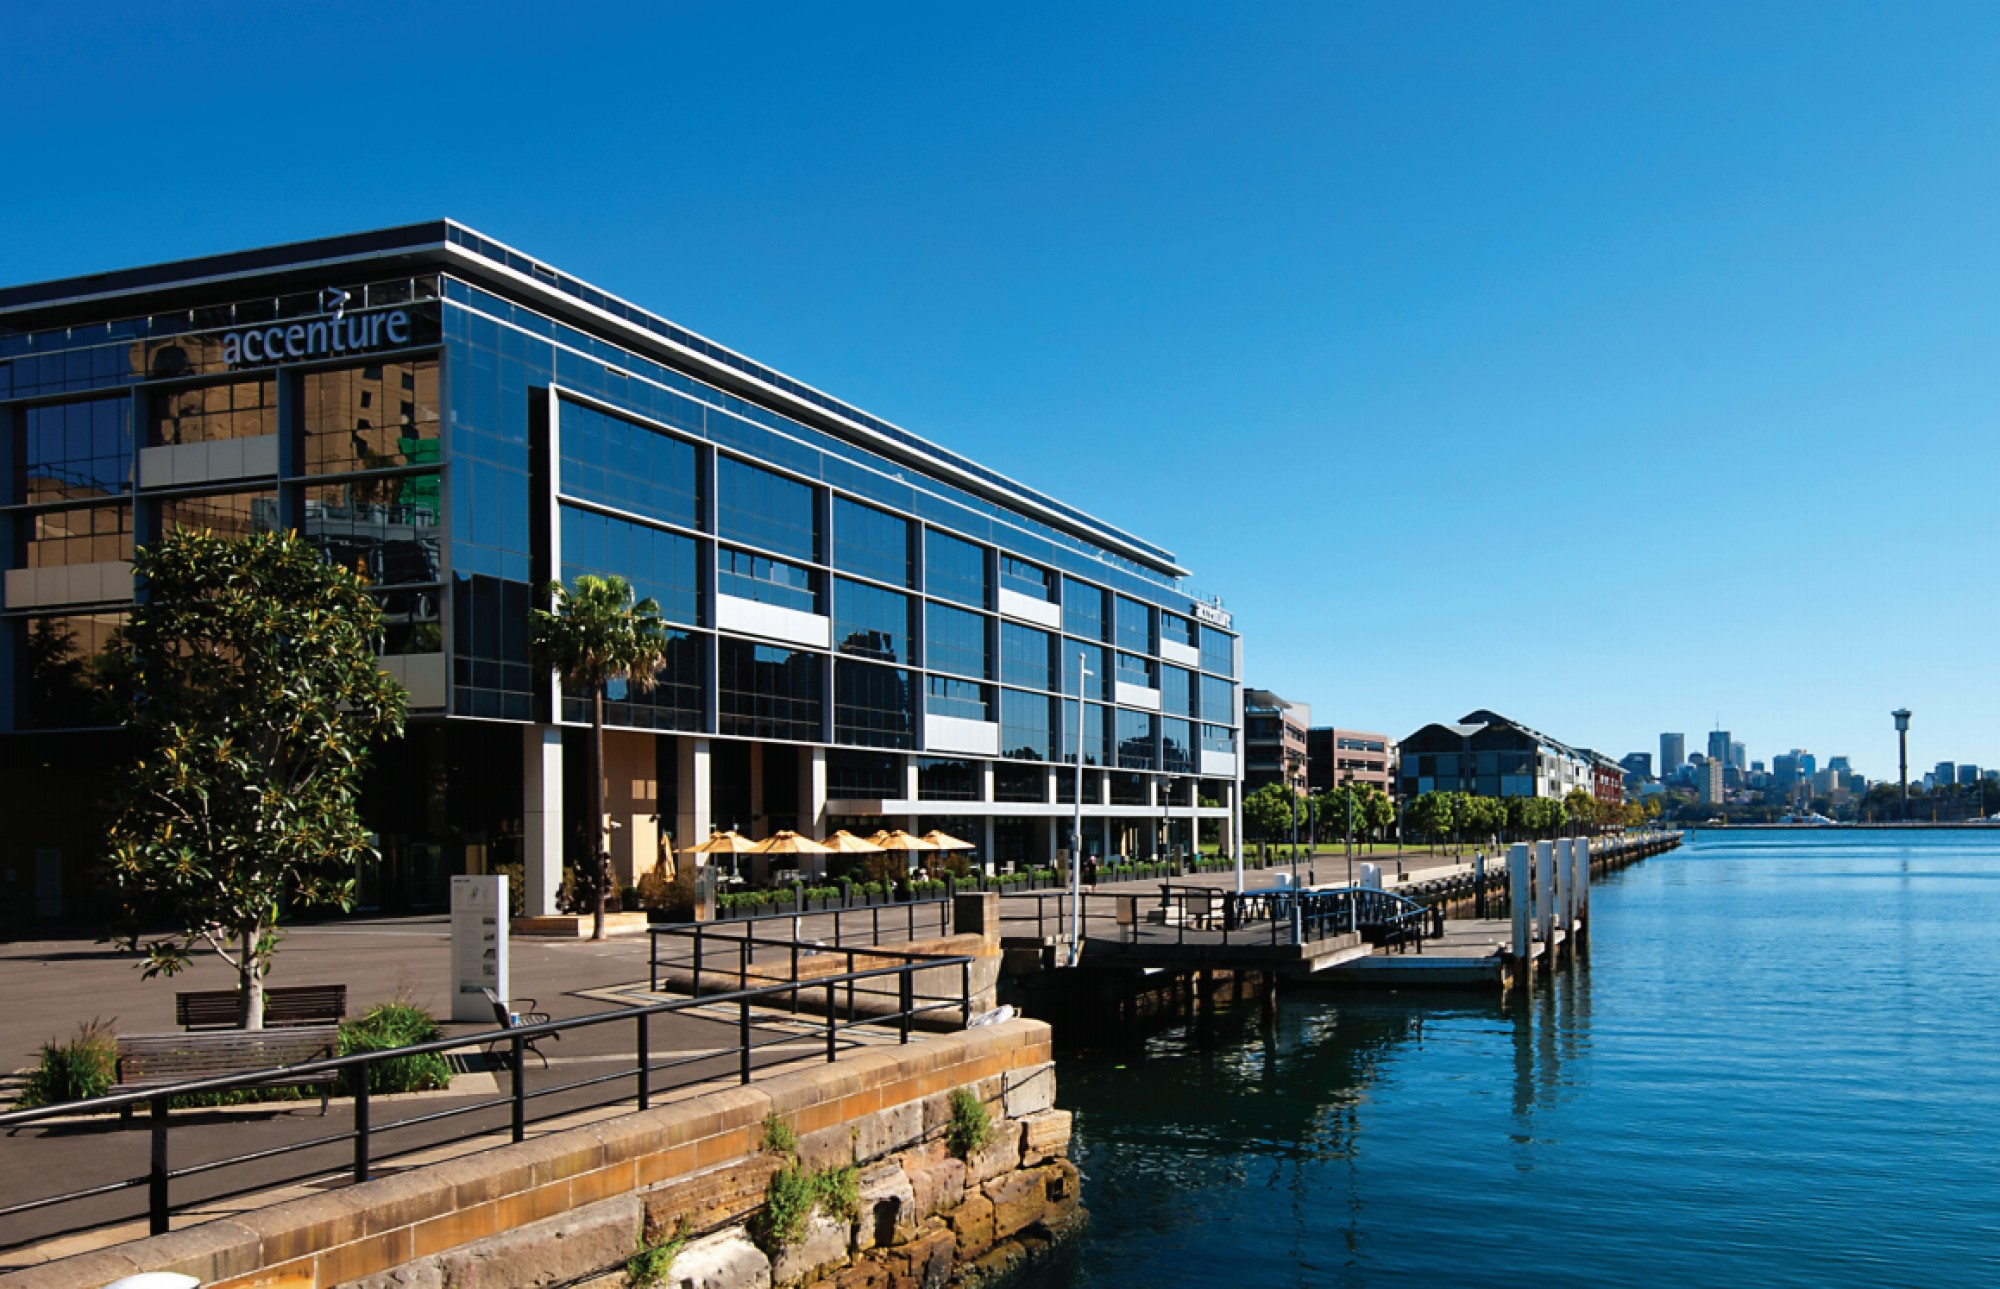 Doltone house darling island wharf book save with venuemob for Accenture sydney